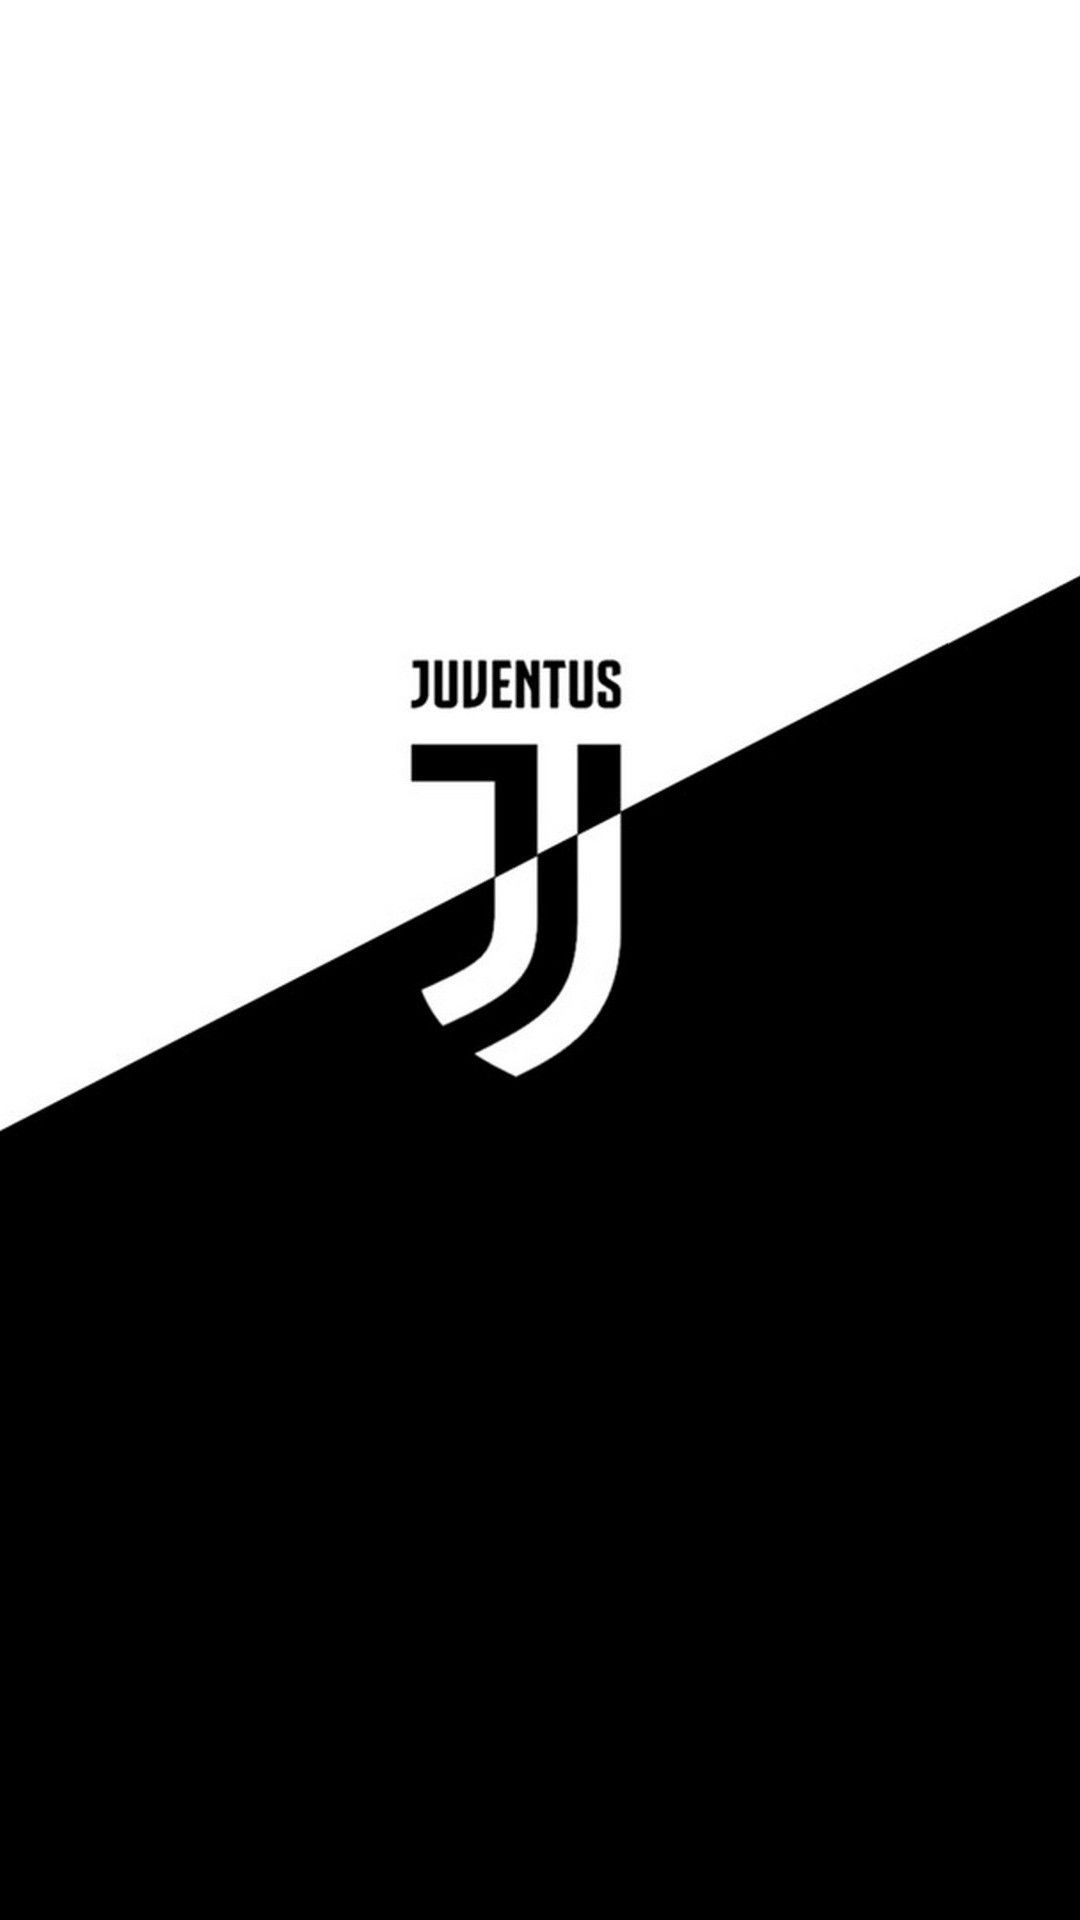 Juventus In 2020 Iphone Logo Juventus Wallpapers Iphone Wallpaper